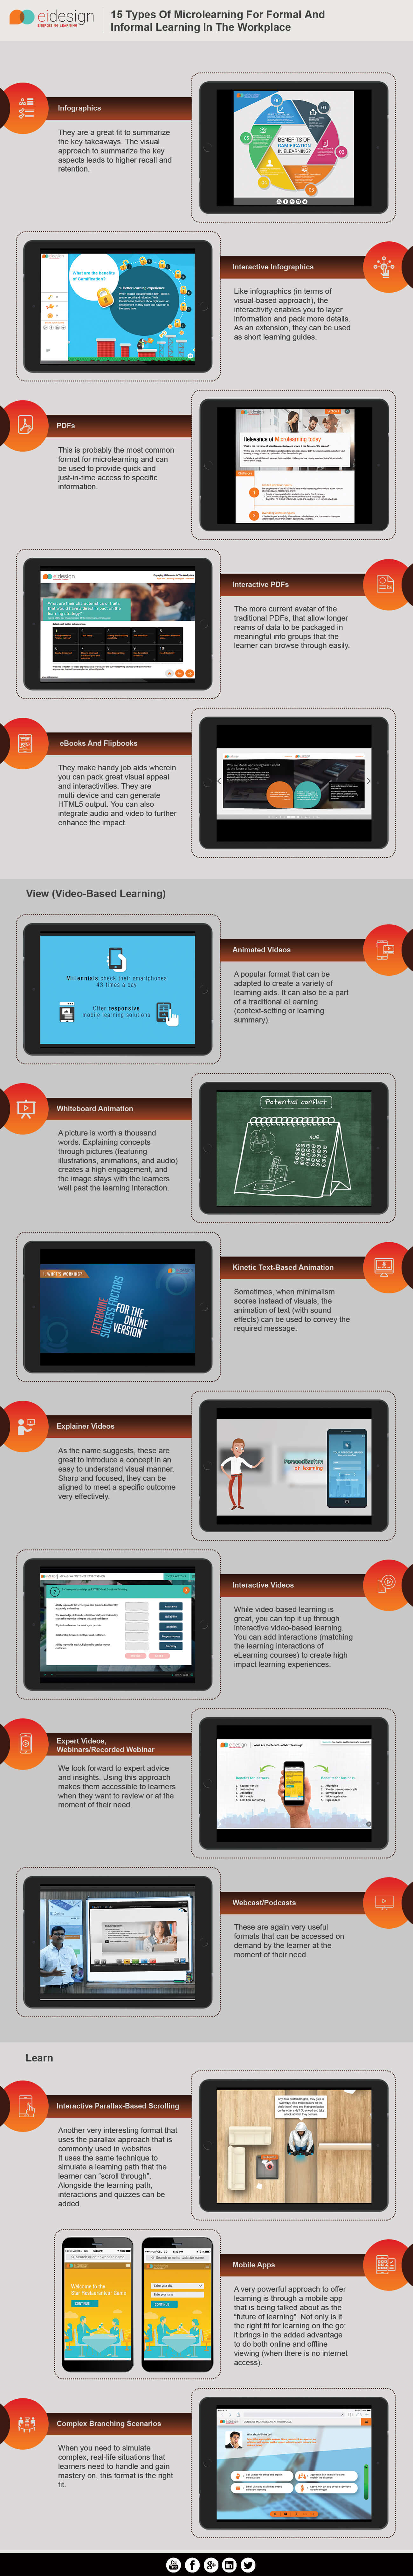 Microlearning In The Workplace – 15 Amazing Examples To Make Your Training Exciting Infographic